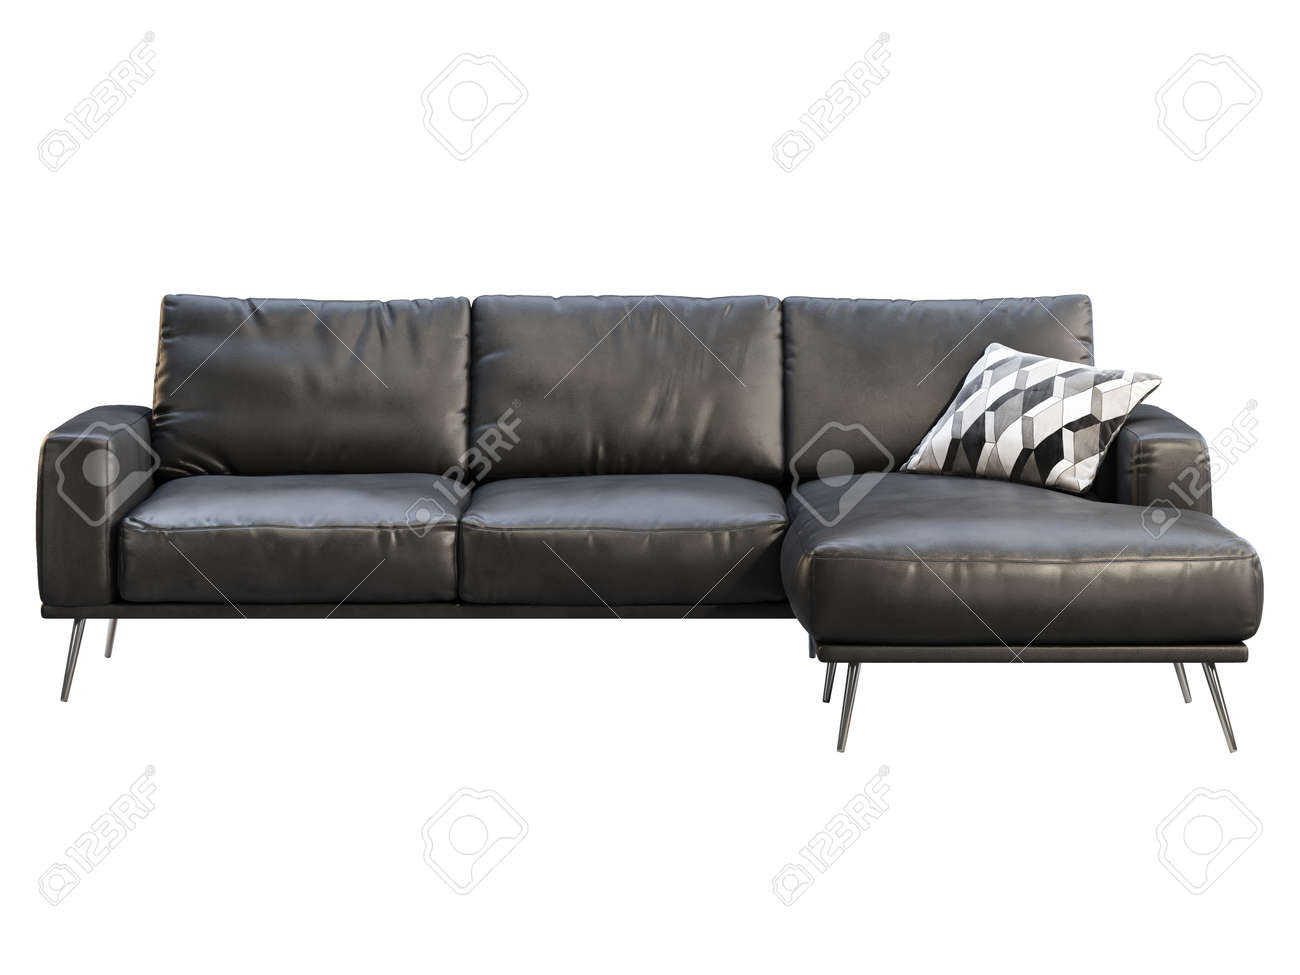 Modern Chaise Lounge Sofa Black Leather Corner Sofa With Metal Stock Photo Picture And Royalty Free Image Image 145889433